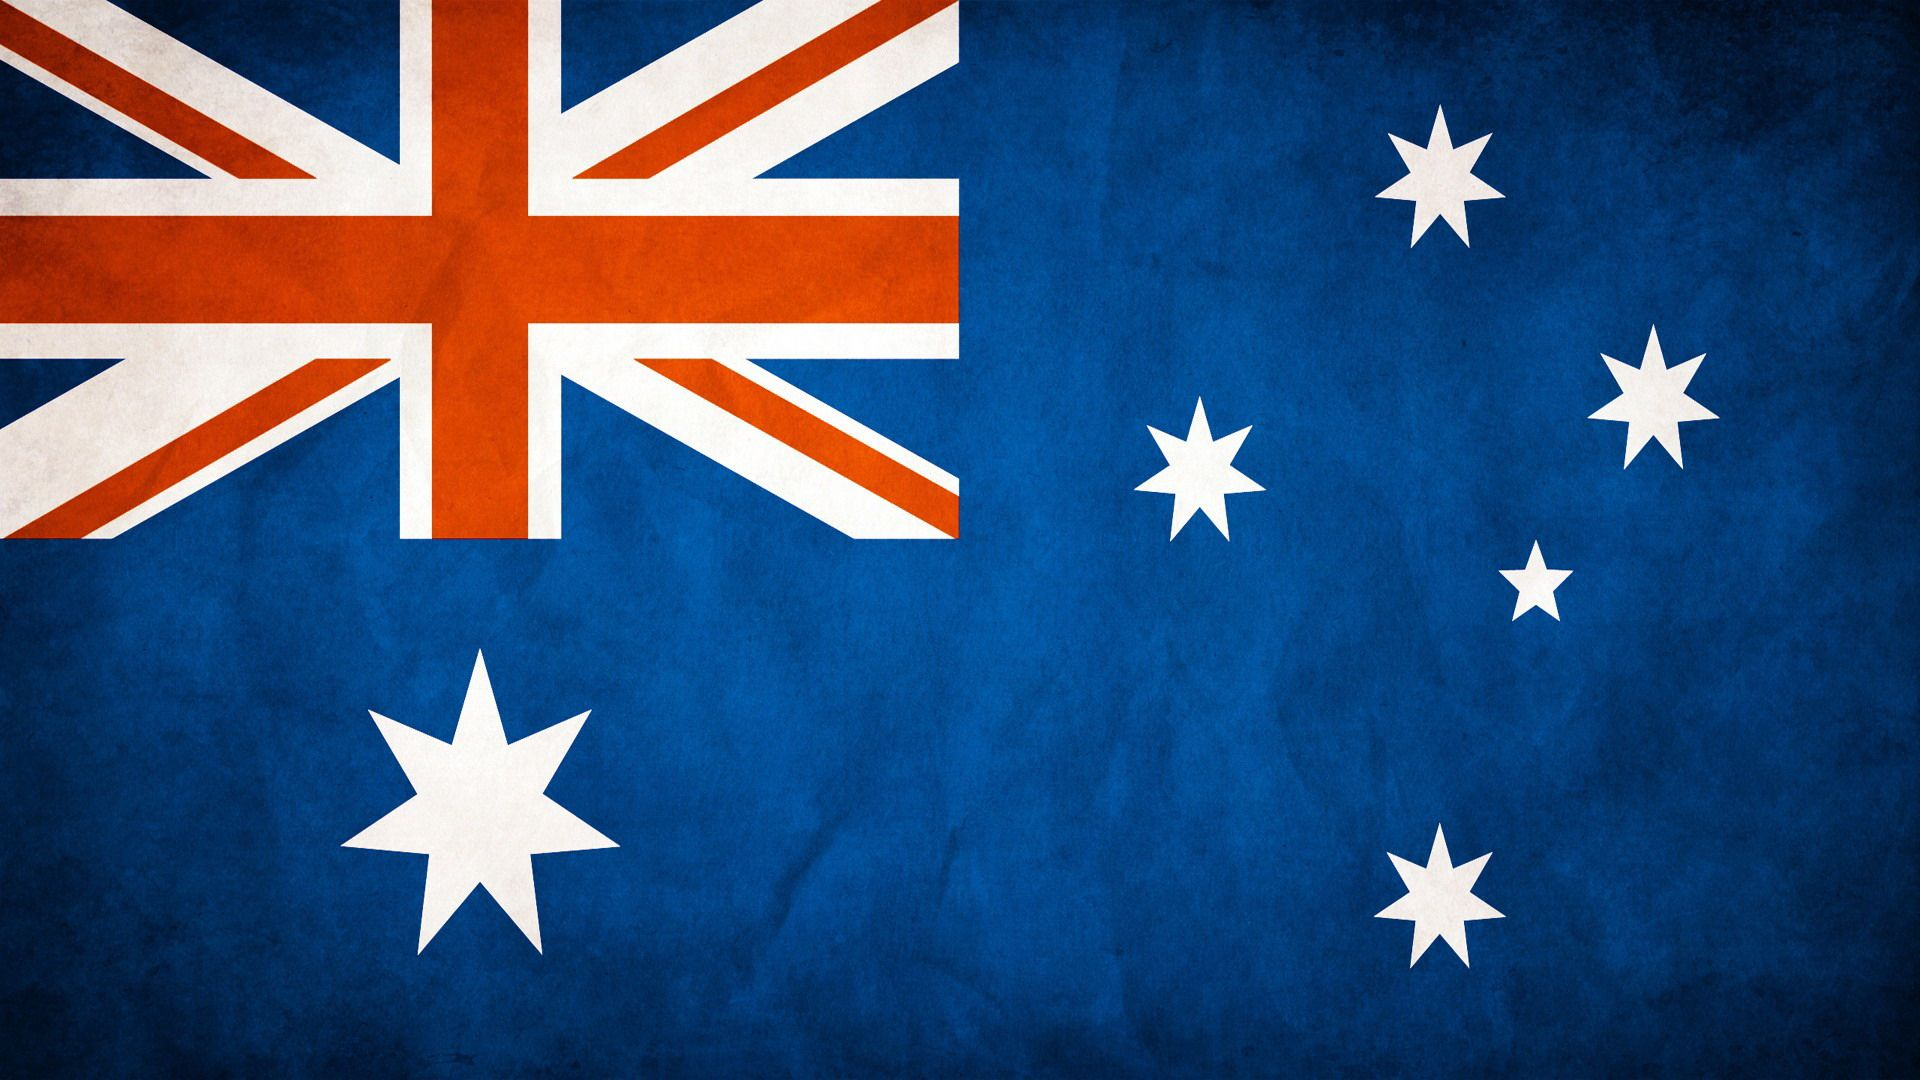 https://media.moddb.com/images/articles/1/131/130169/auto/australian-flag.jpg